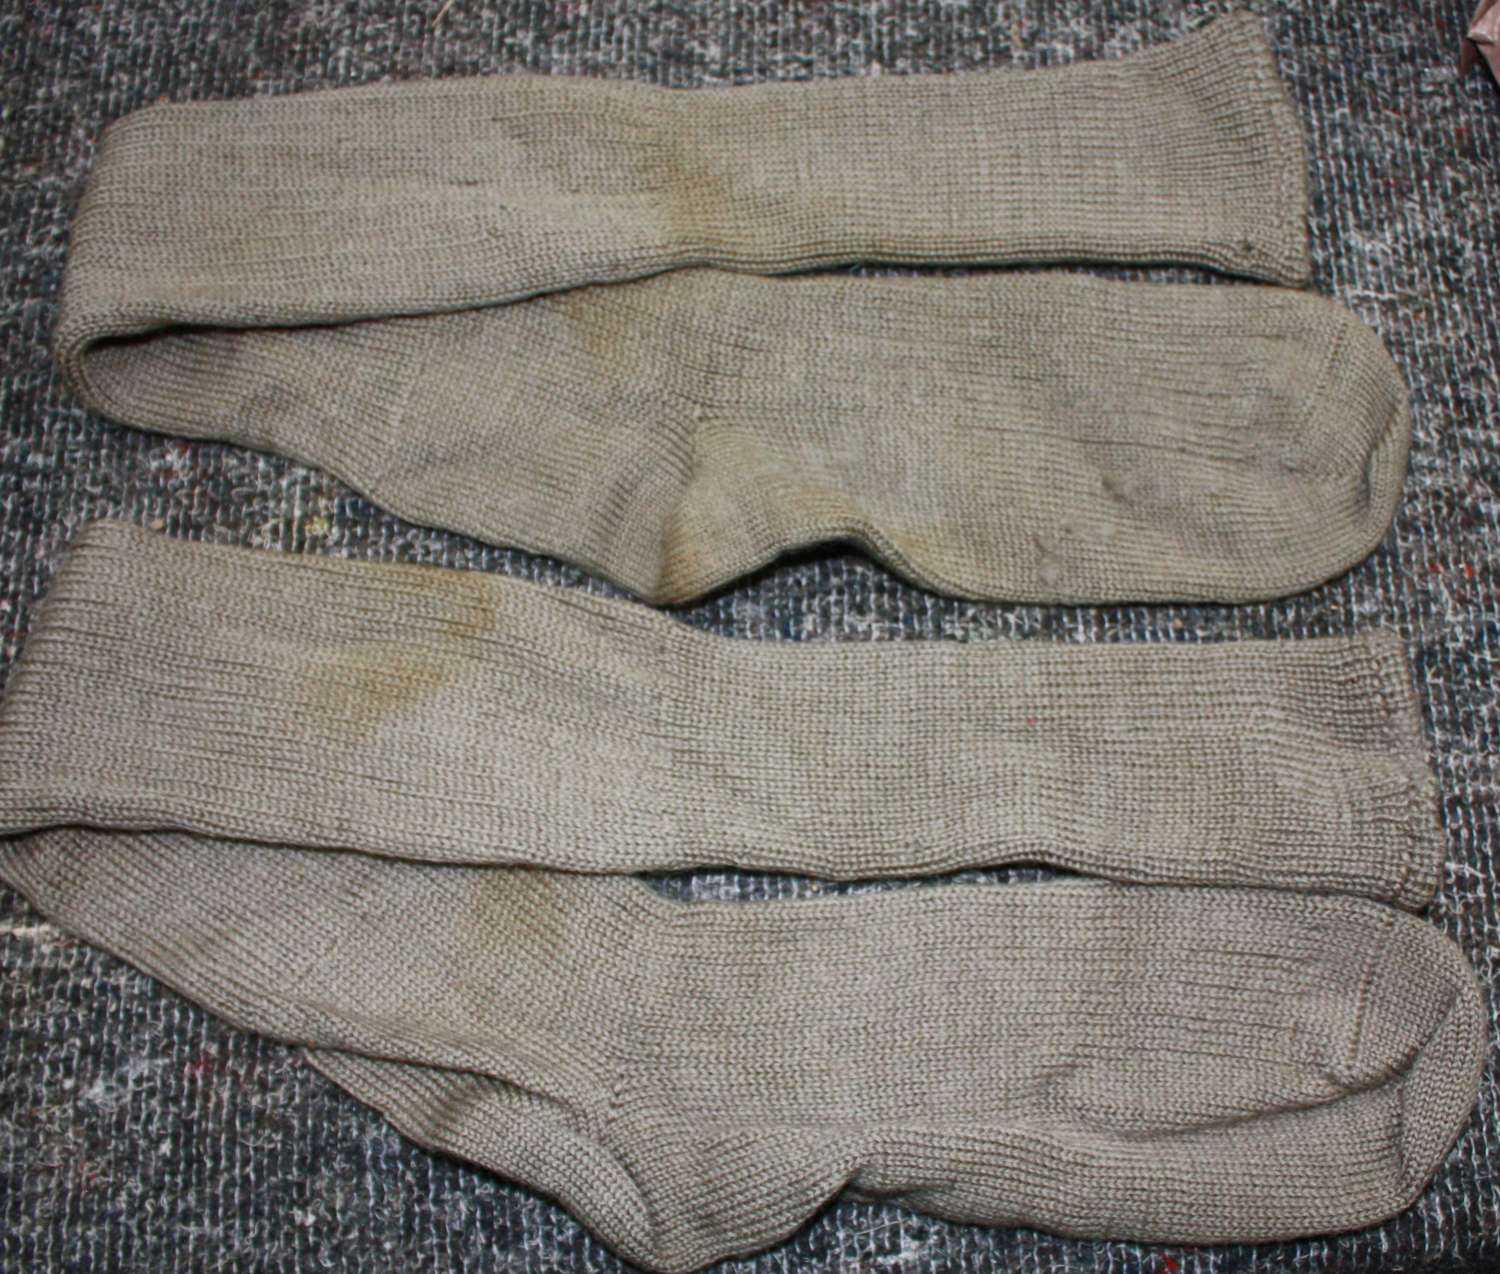 A PAIR OF THE KNEE LENGTH ARMY 1945 DATED SOCKS